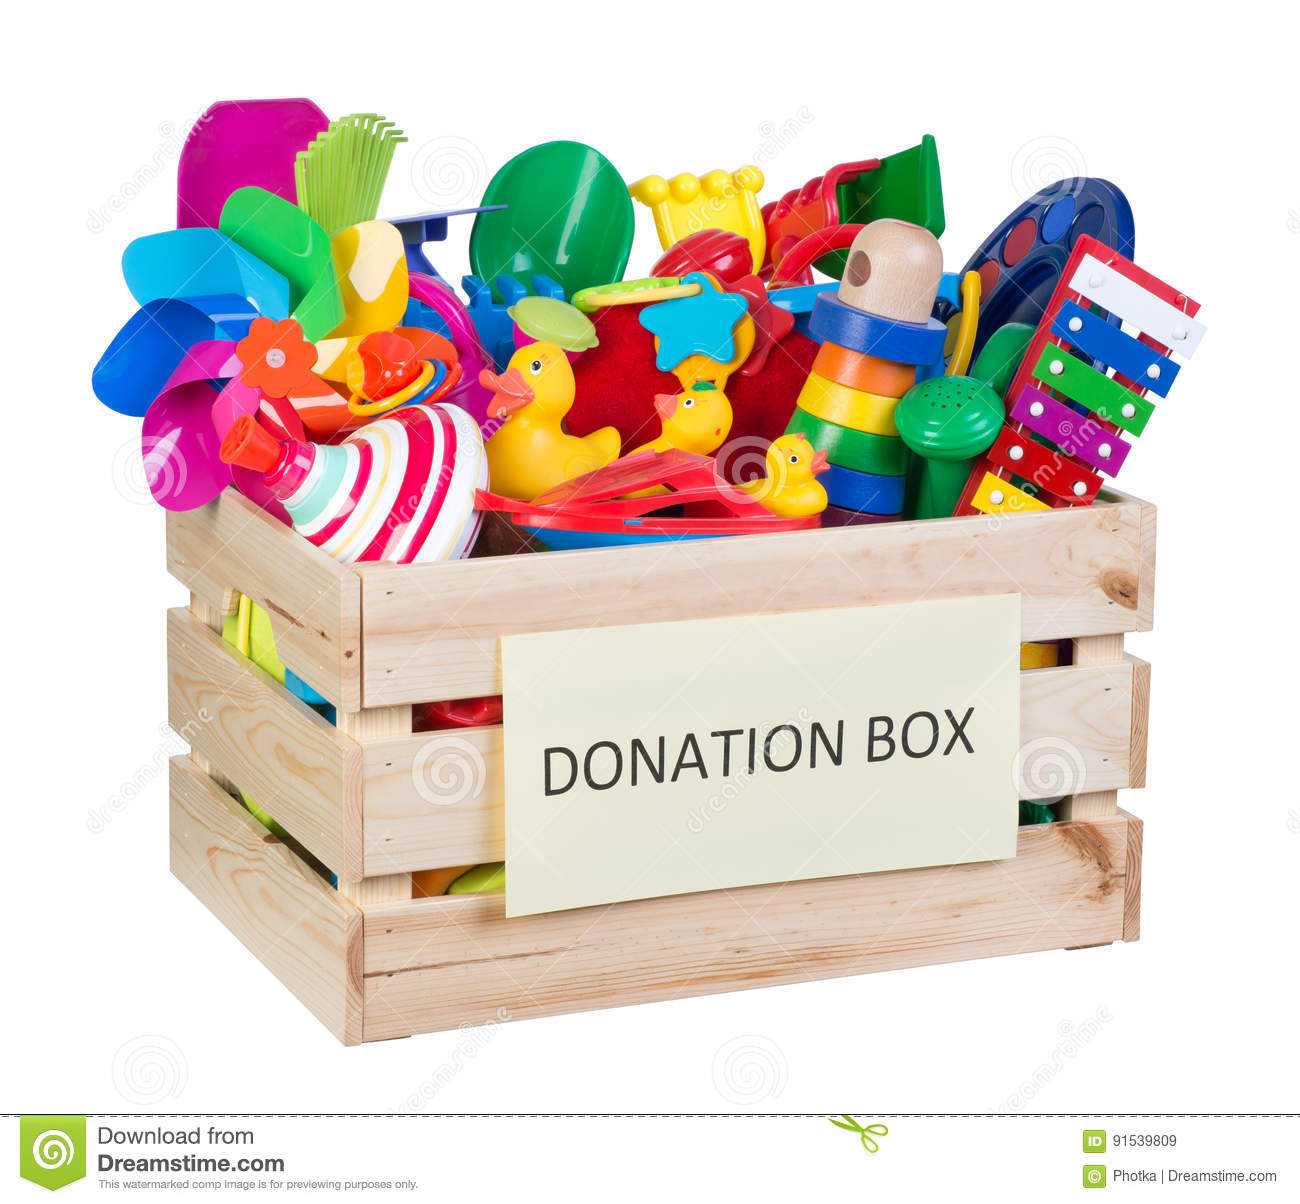 Toys For Donation : Toys donations box stock image of help duck